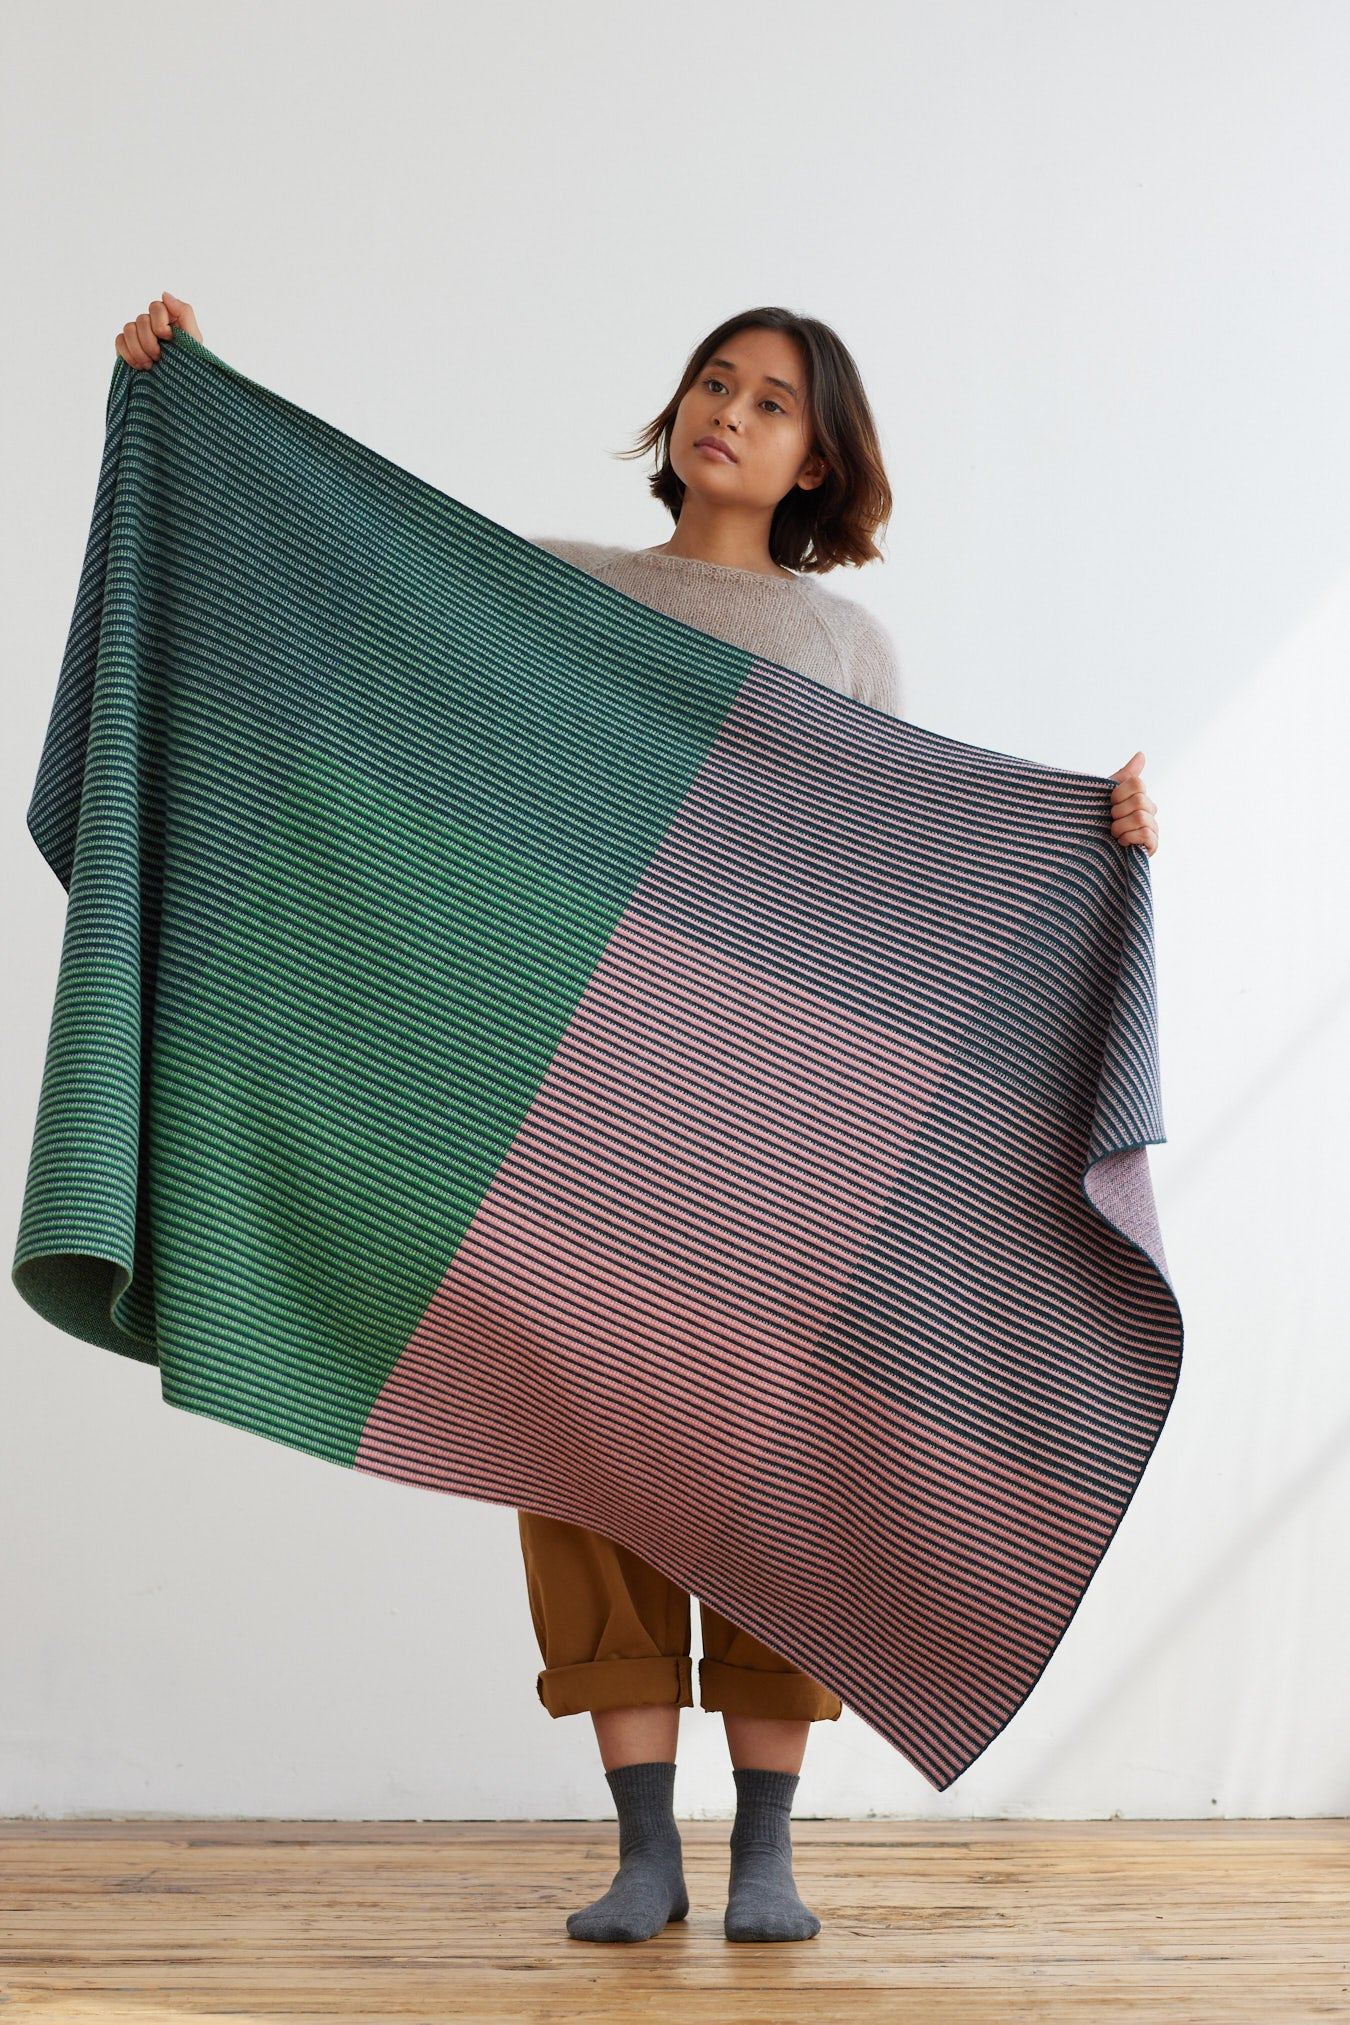 'St Ives' Blanket in Sea Pink and Oxide Green